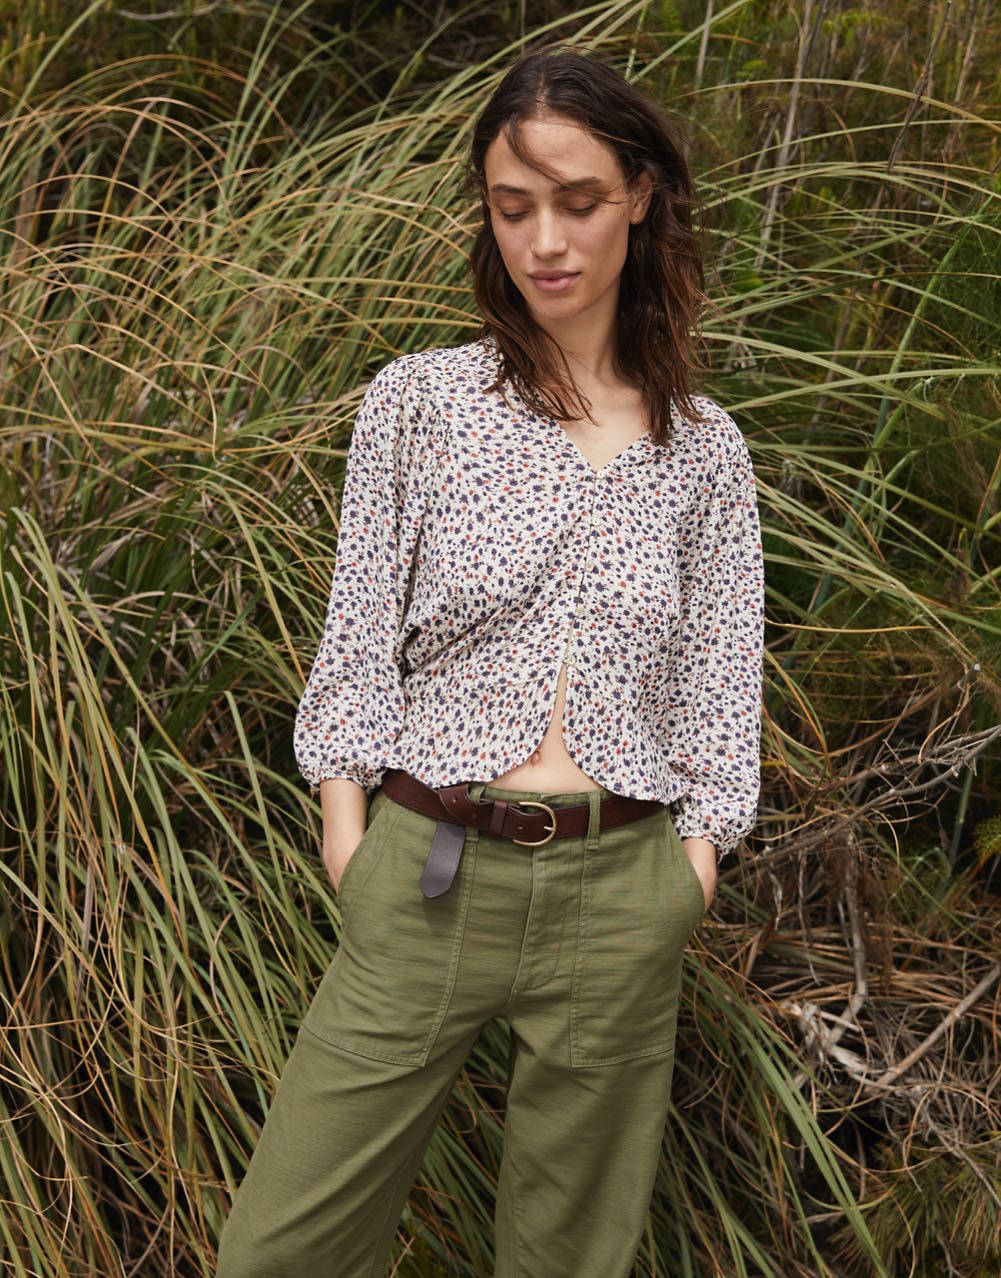 Madewell x Christy Dawn Exclusive Collaboration - floral top